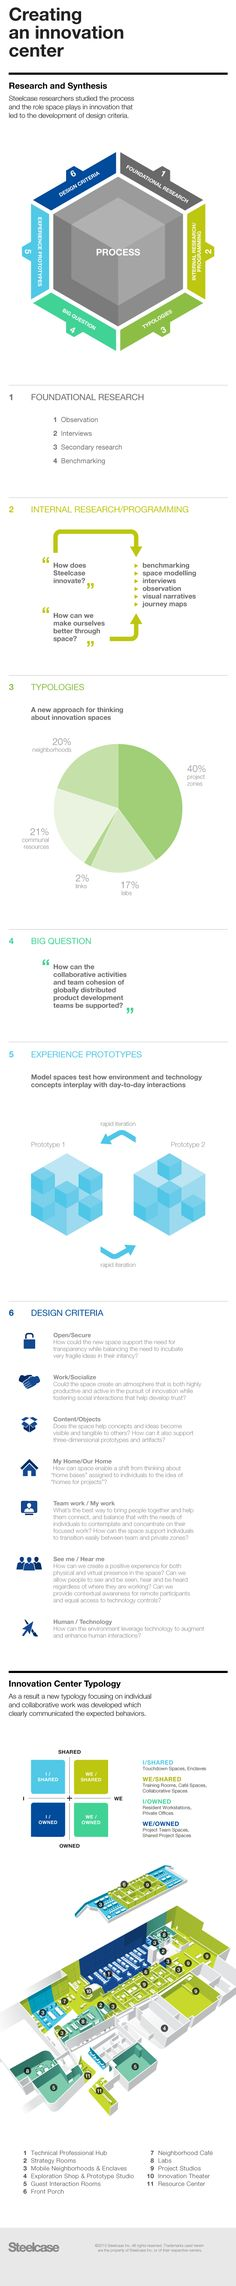 Creating an #innovation center: an #infographic of the research and design…